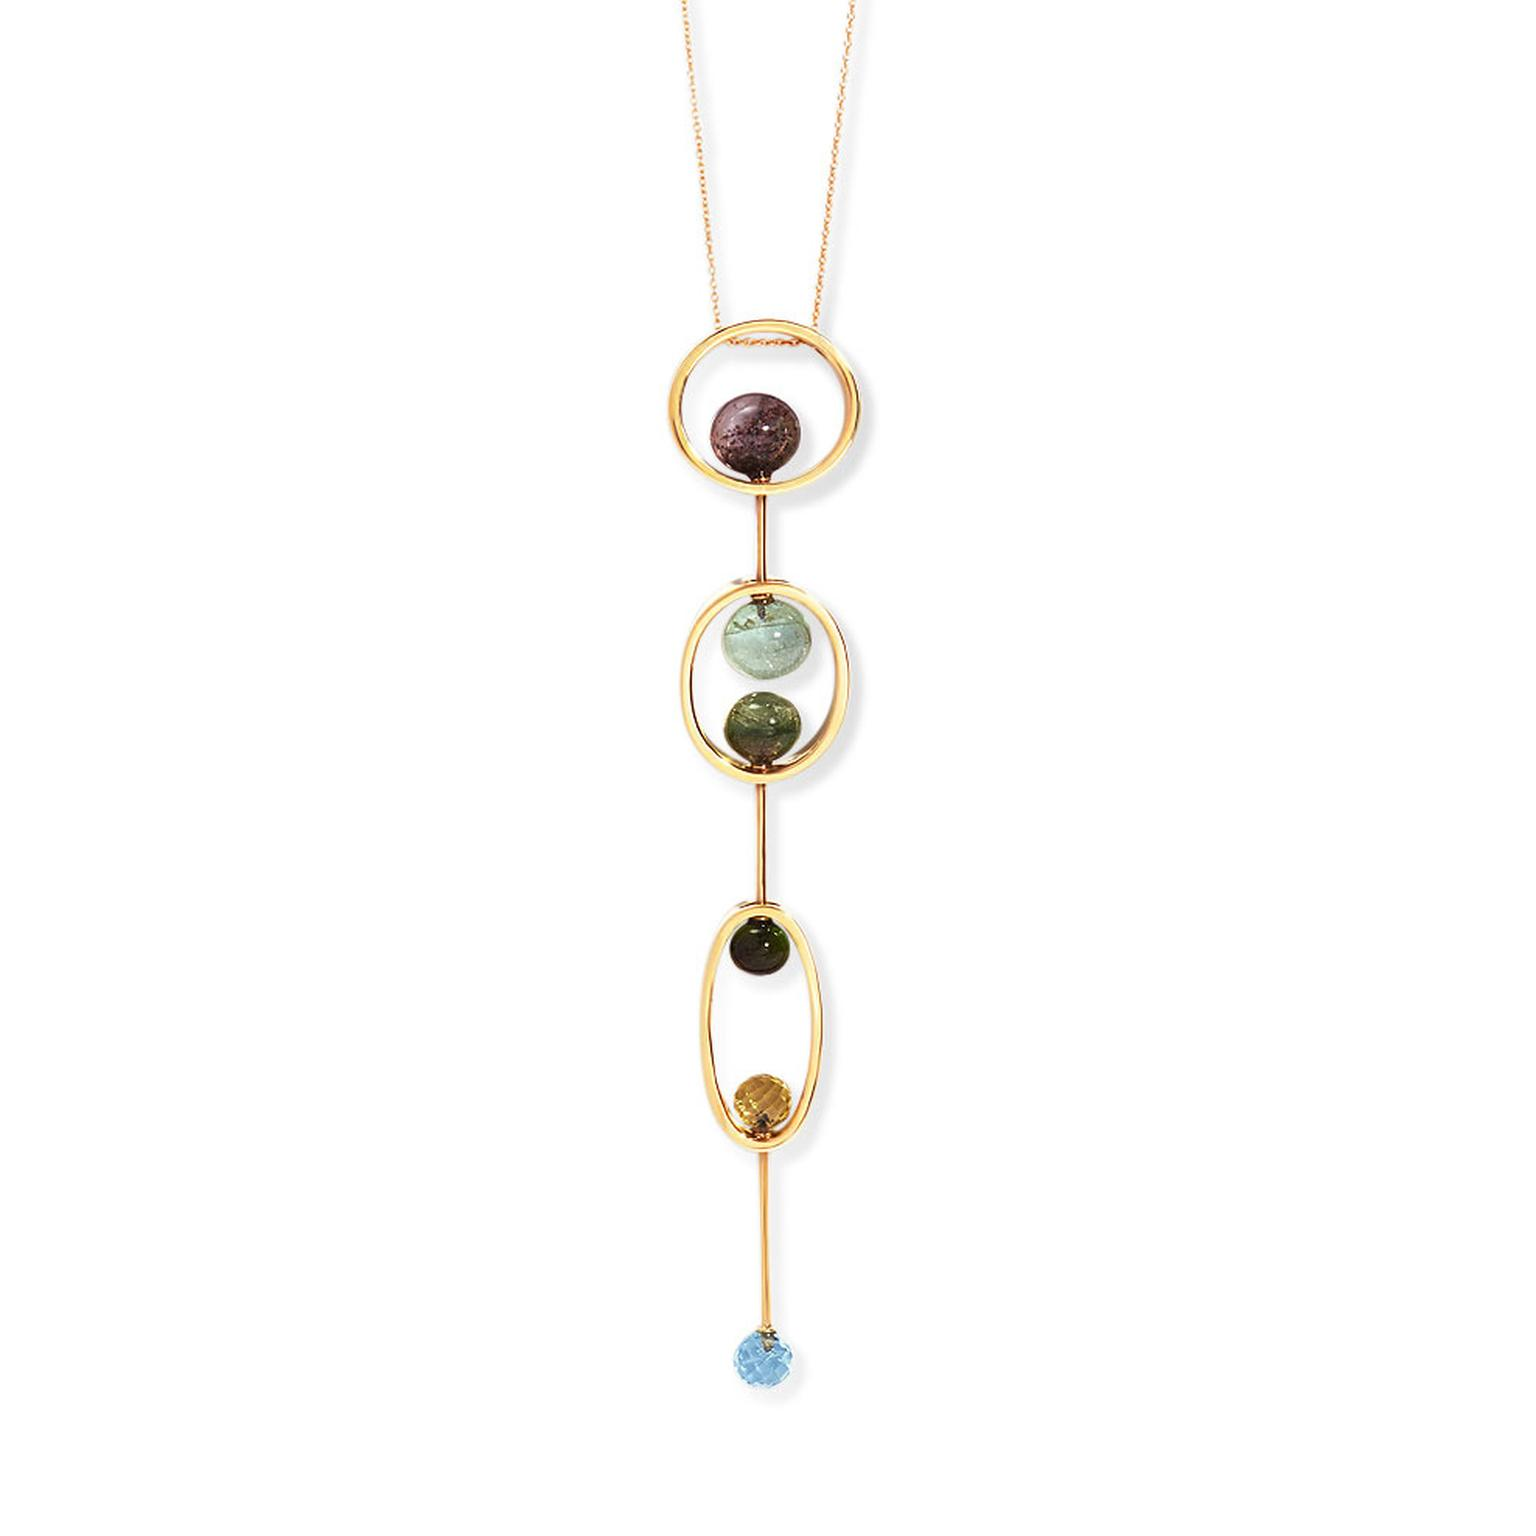 Yael Sonia Natural Encounters pendant